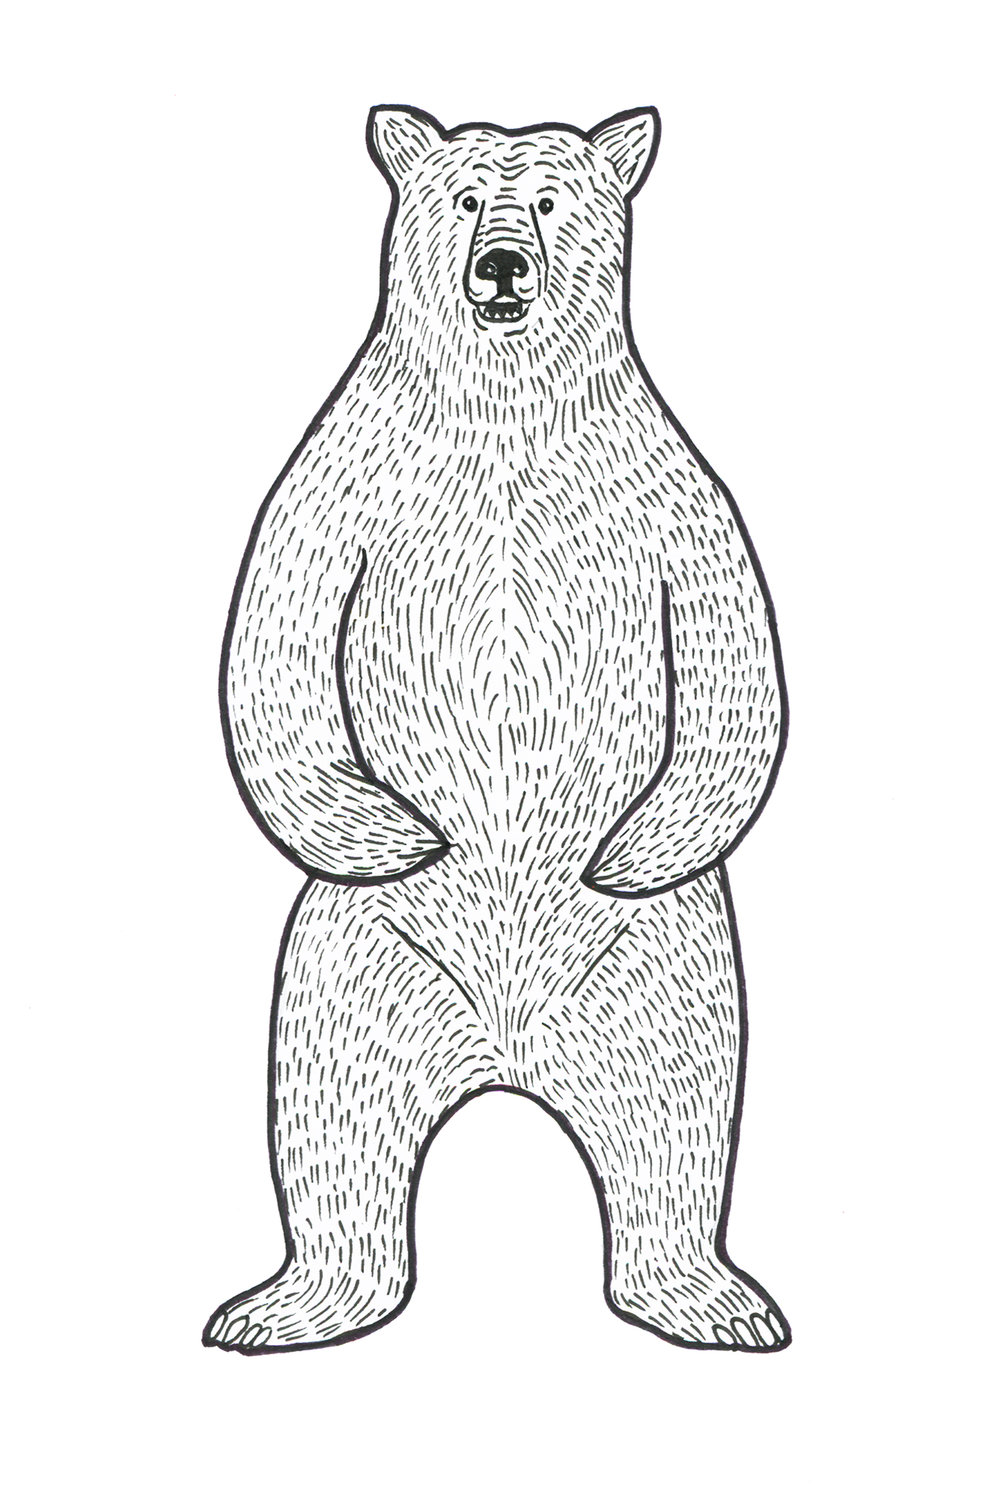 web-bear-illustration.jpg